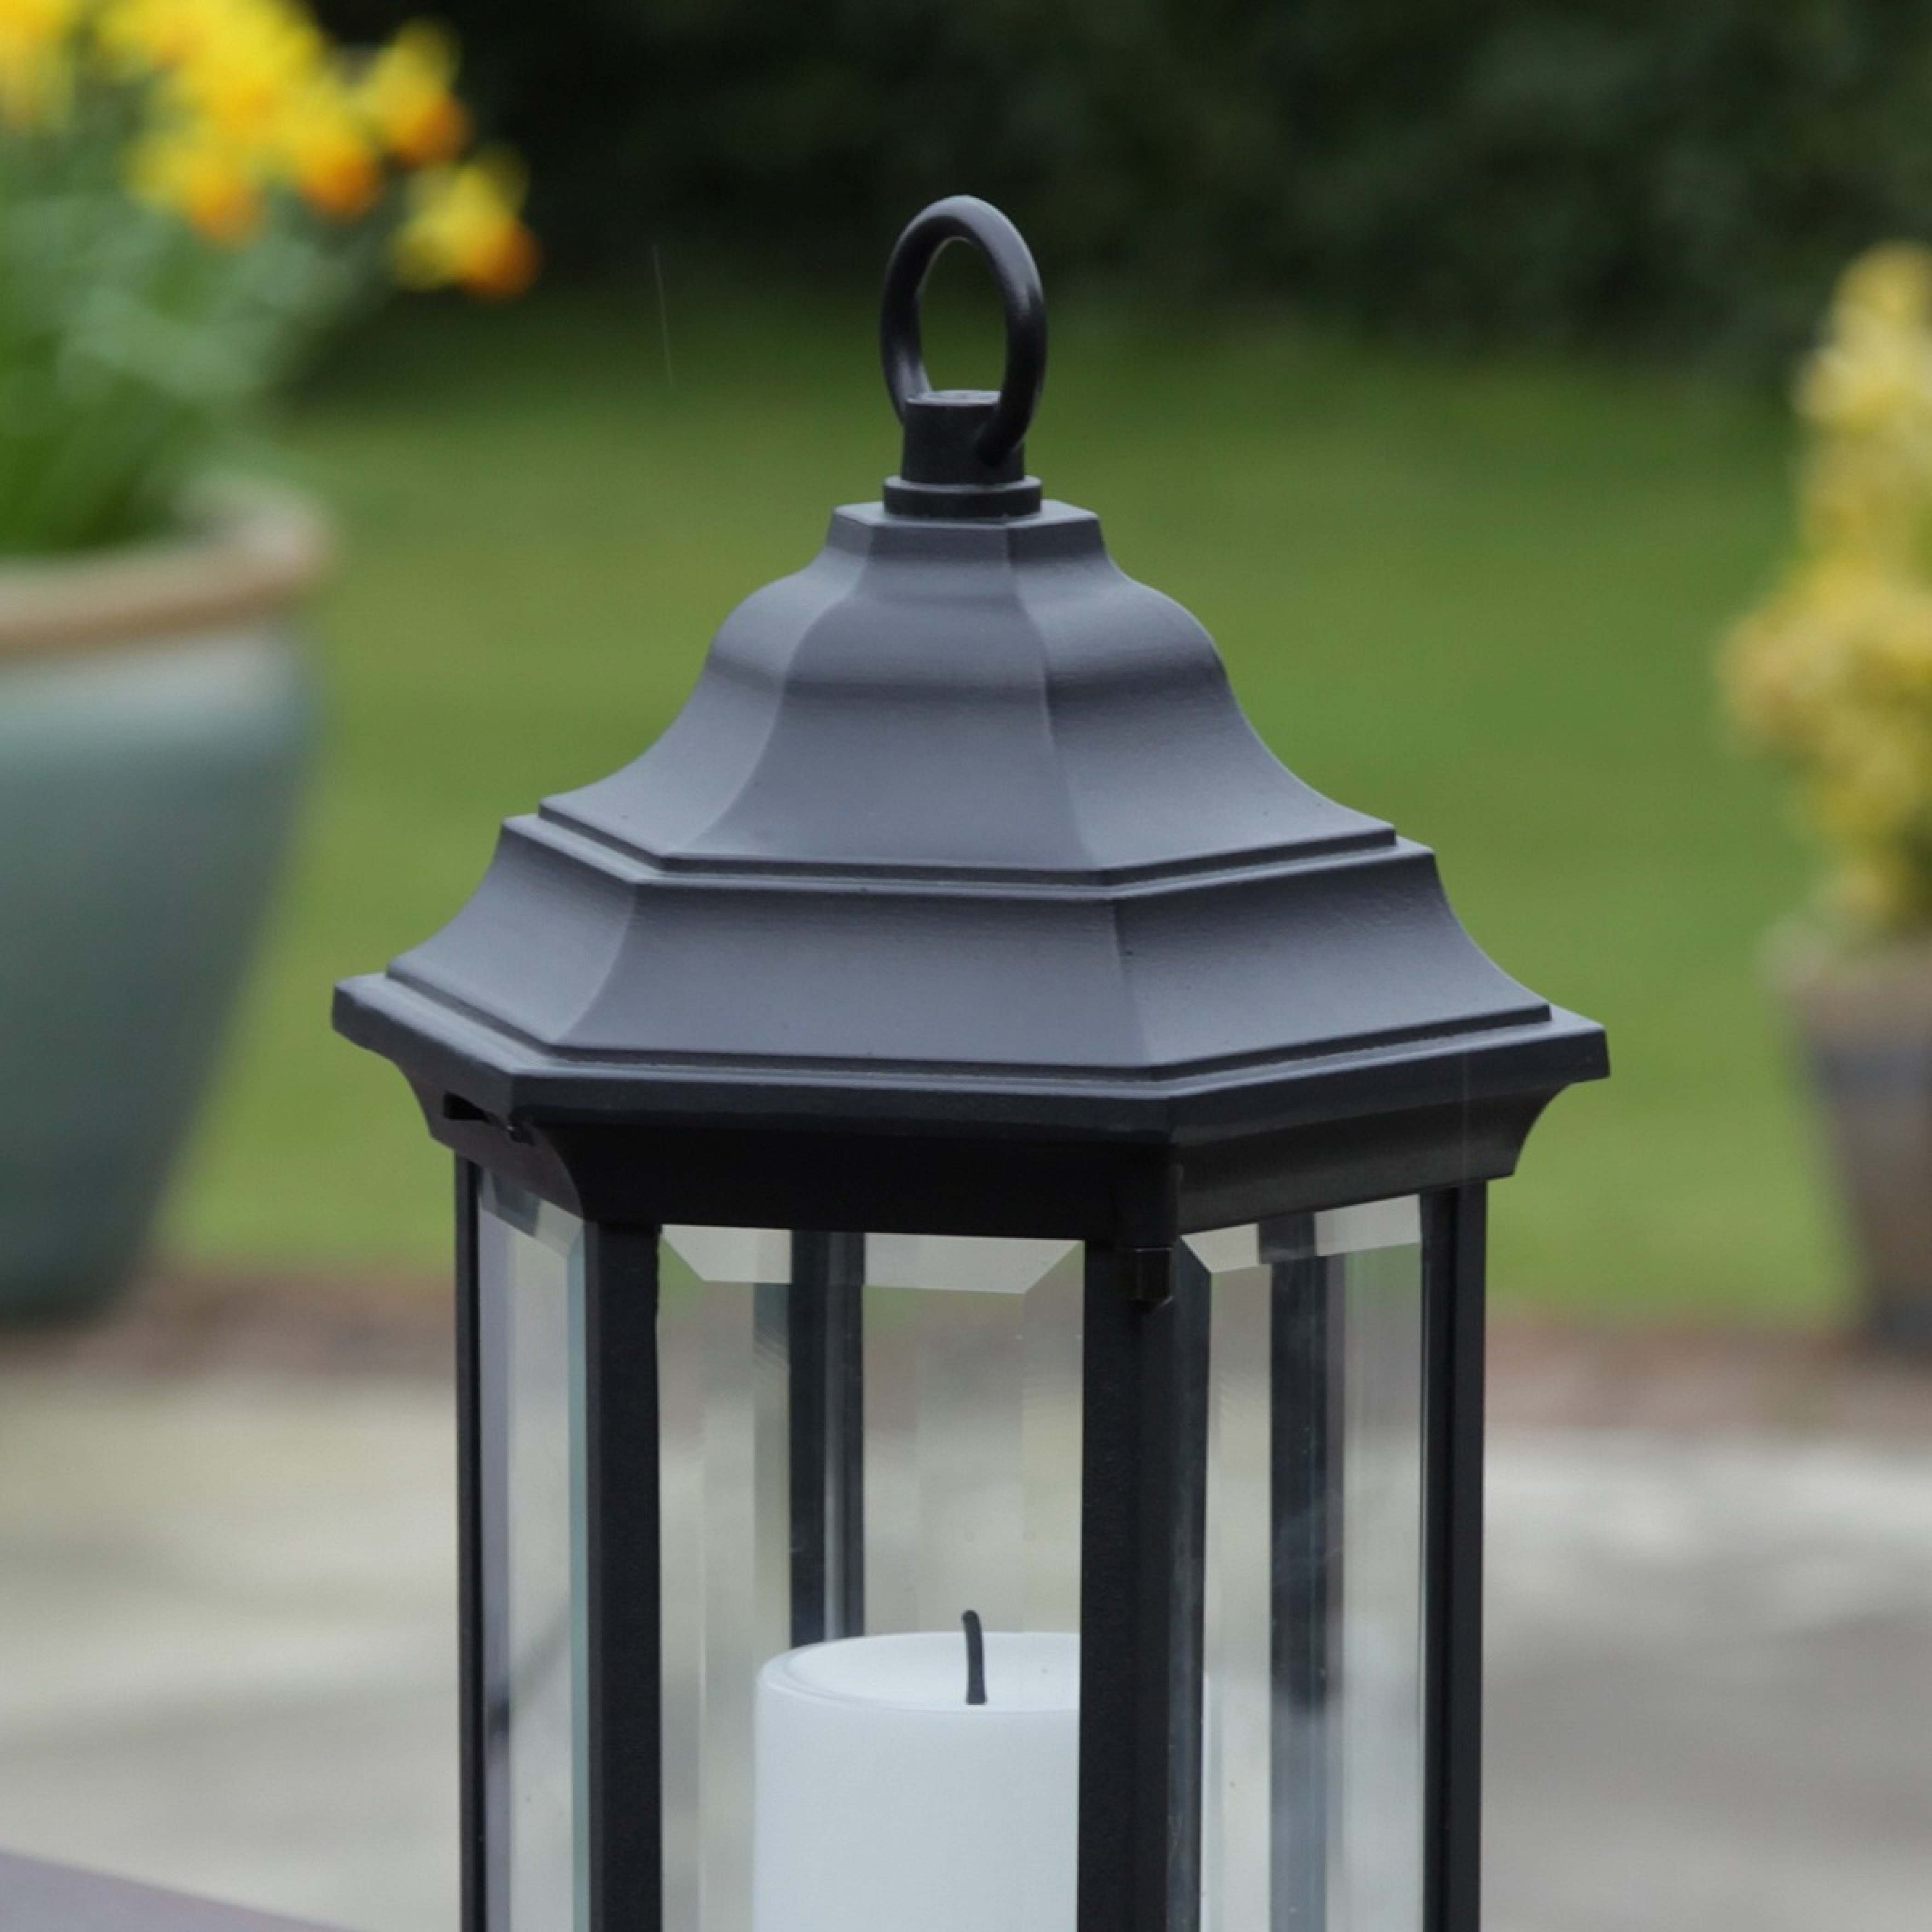 Most Recently Released Outdoor Lanterns With Timers Inside Battery Operated Outdoor Lantern With Timer – Outdoor Lighting Ideas (View 3 of 20)